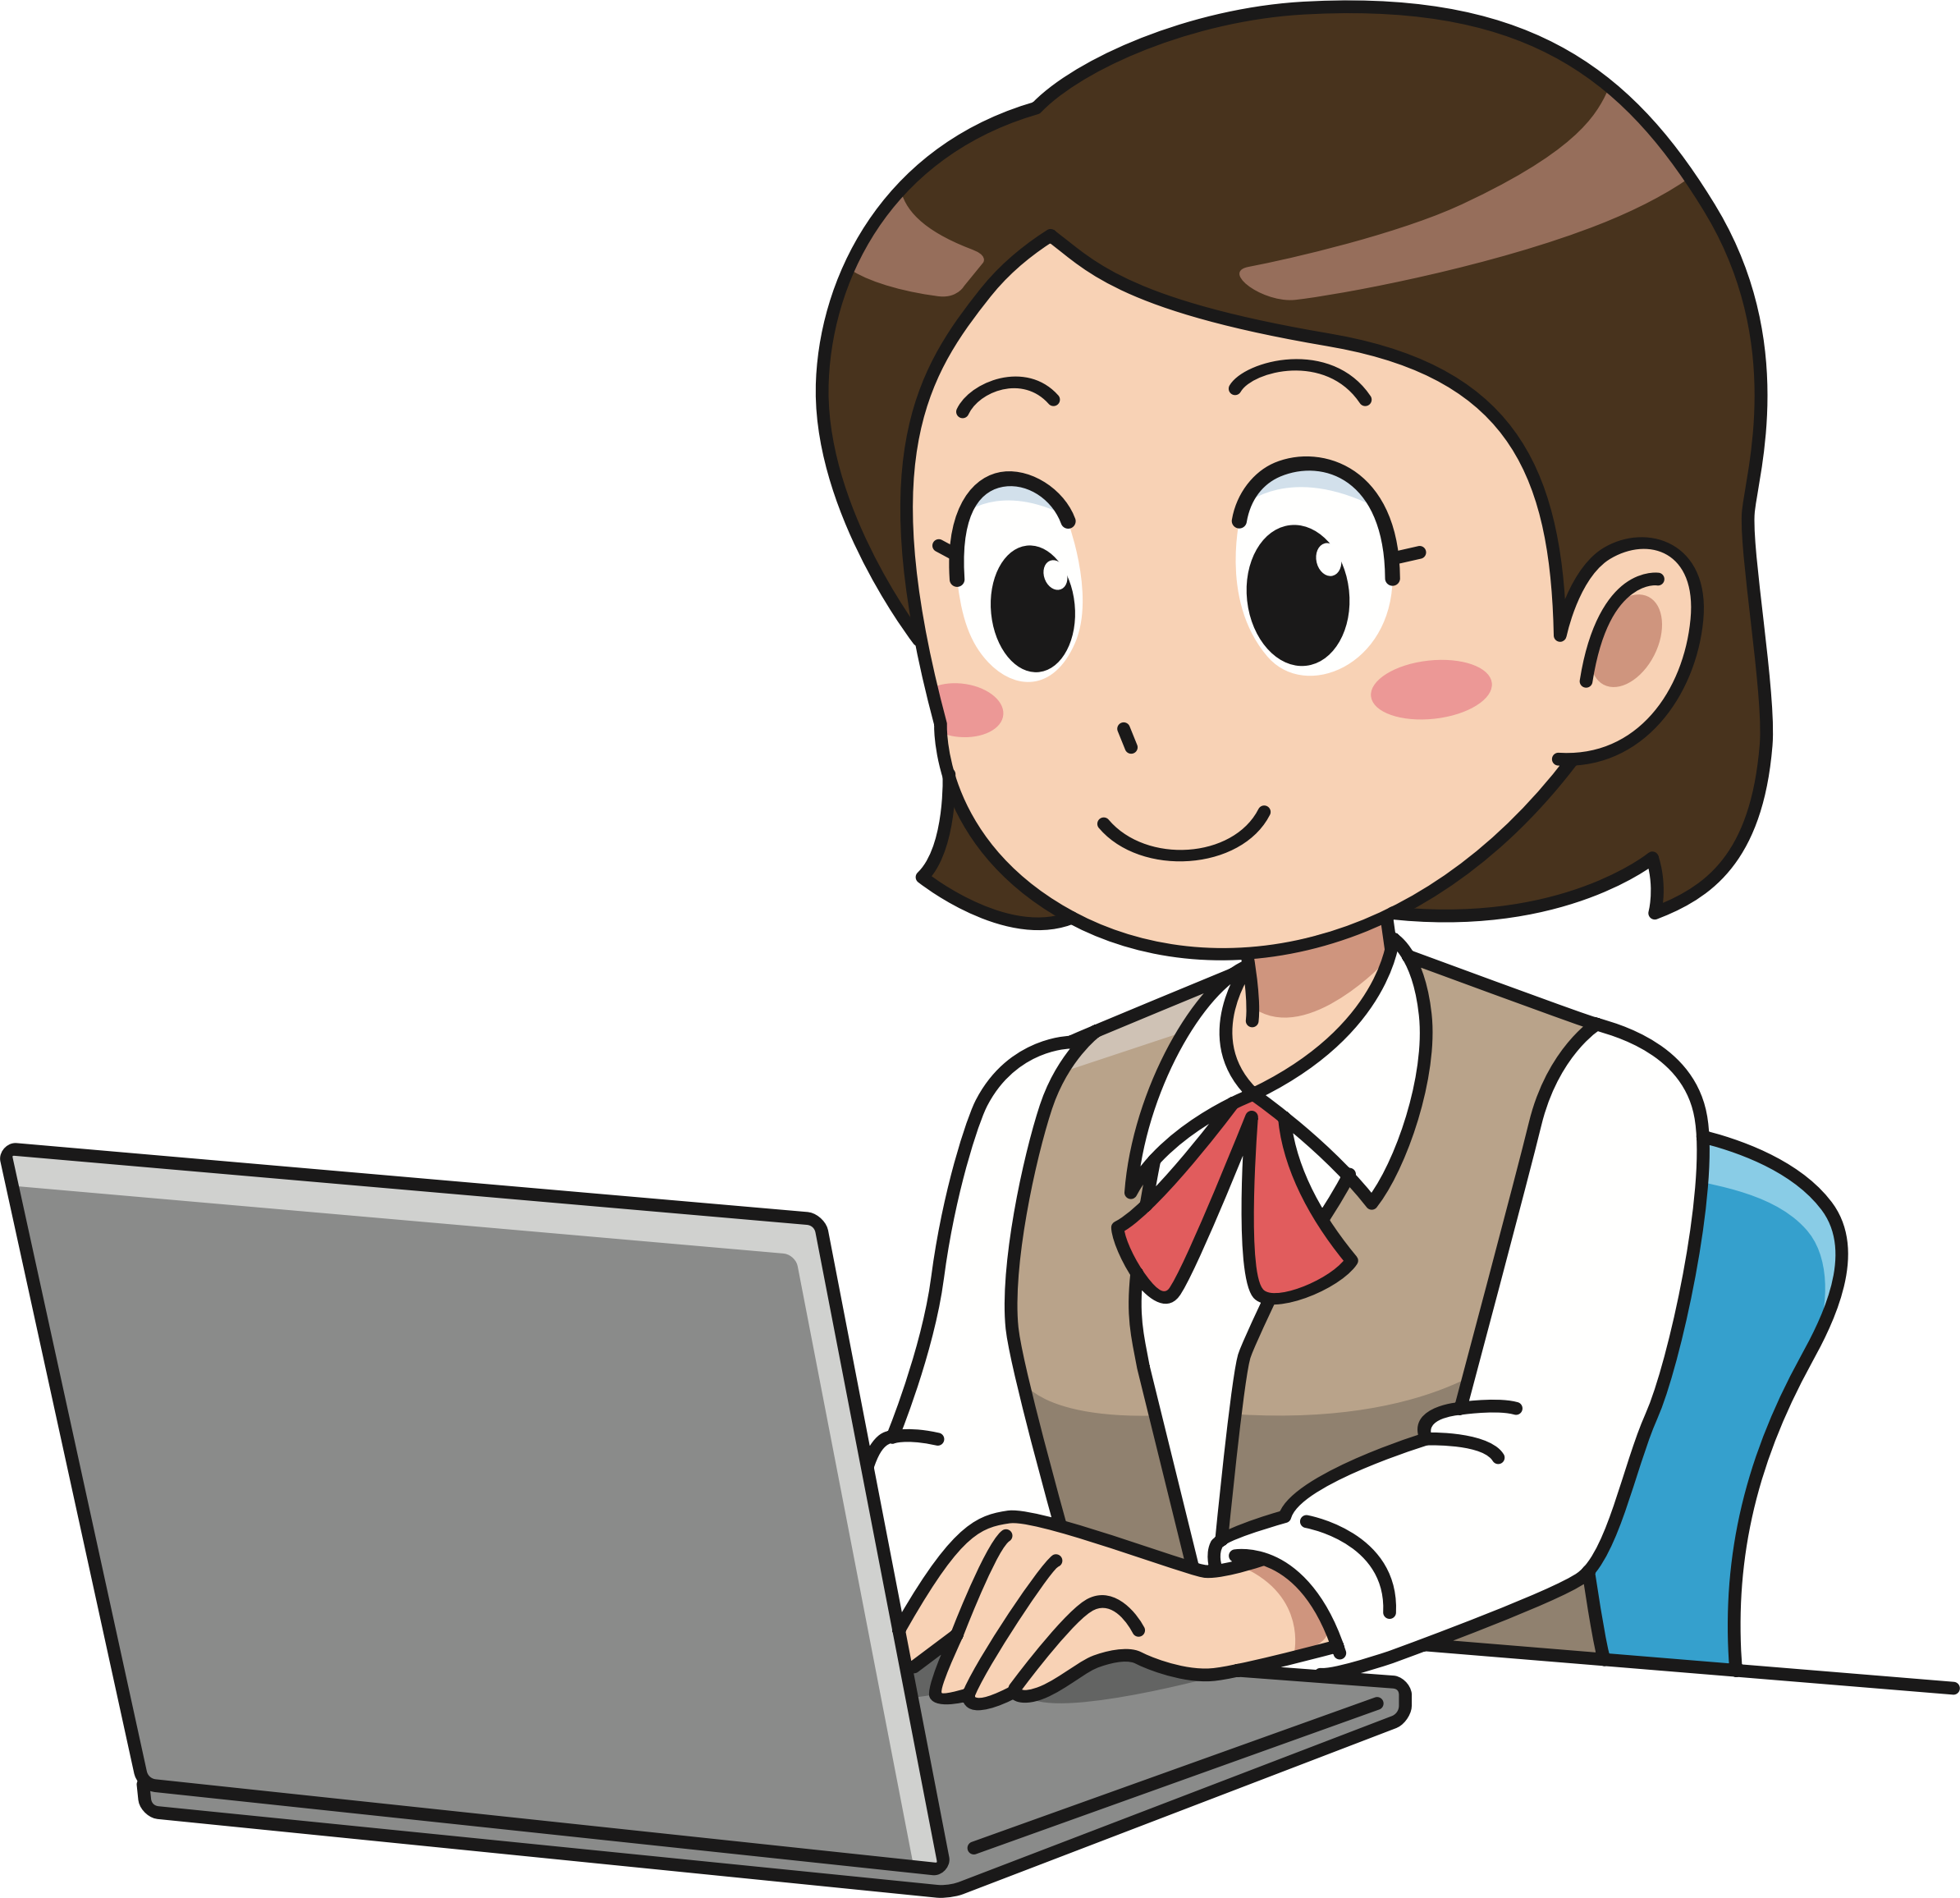 Girl On A Computer Clipart.